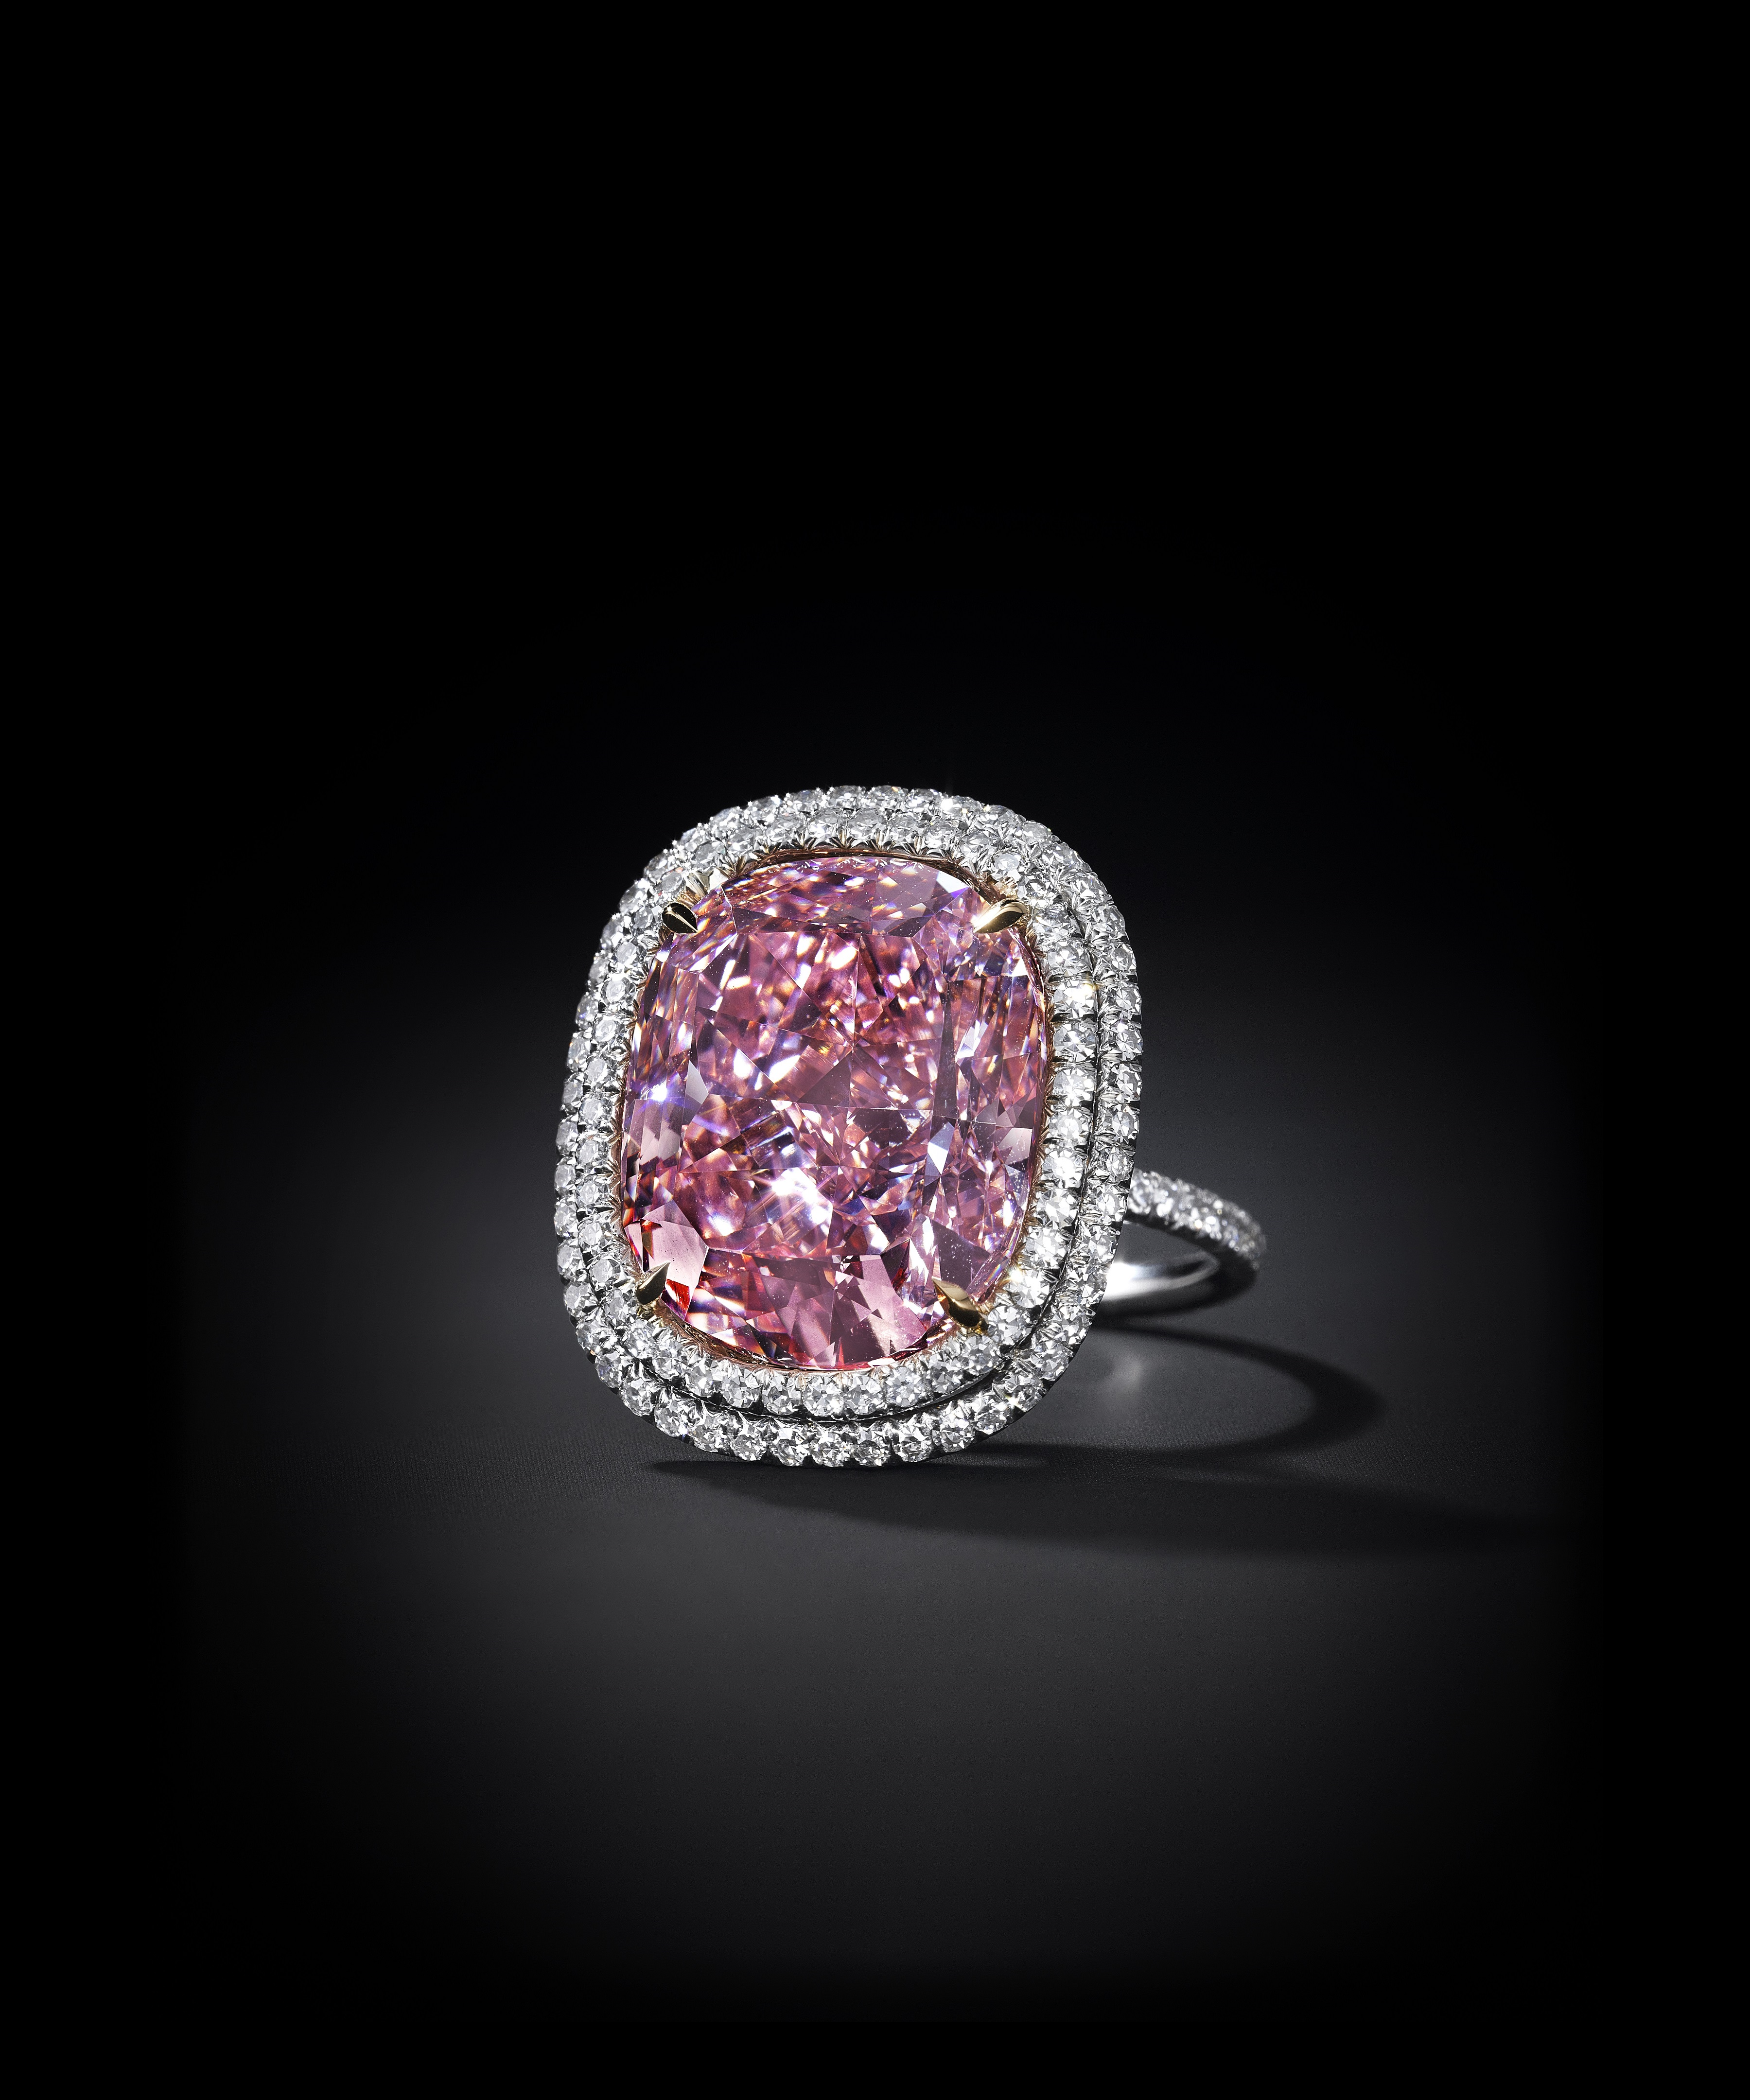 Million Dollar Enement Ring | World S Most Expensive Diamond Goes For 48 4m Pictures Cnn Style